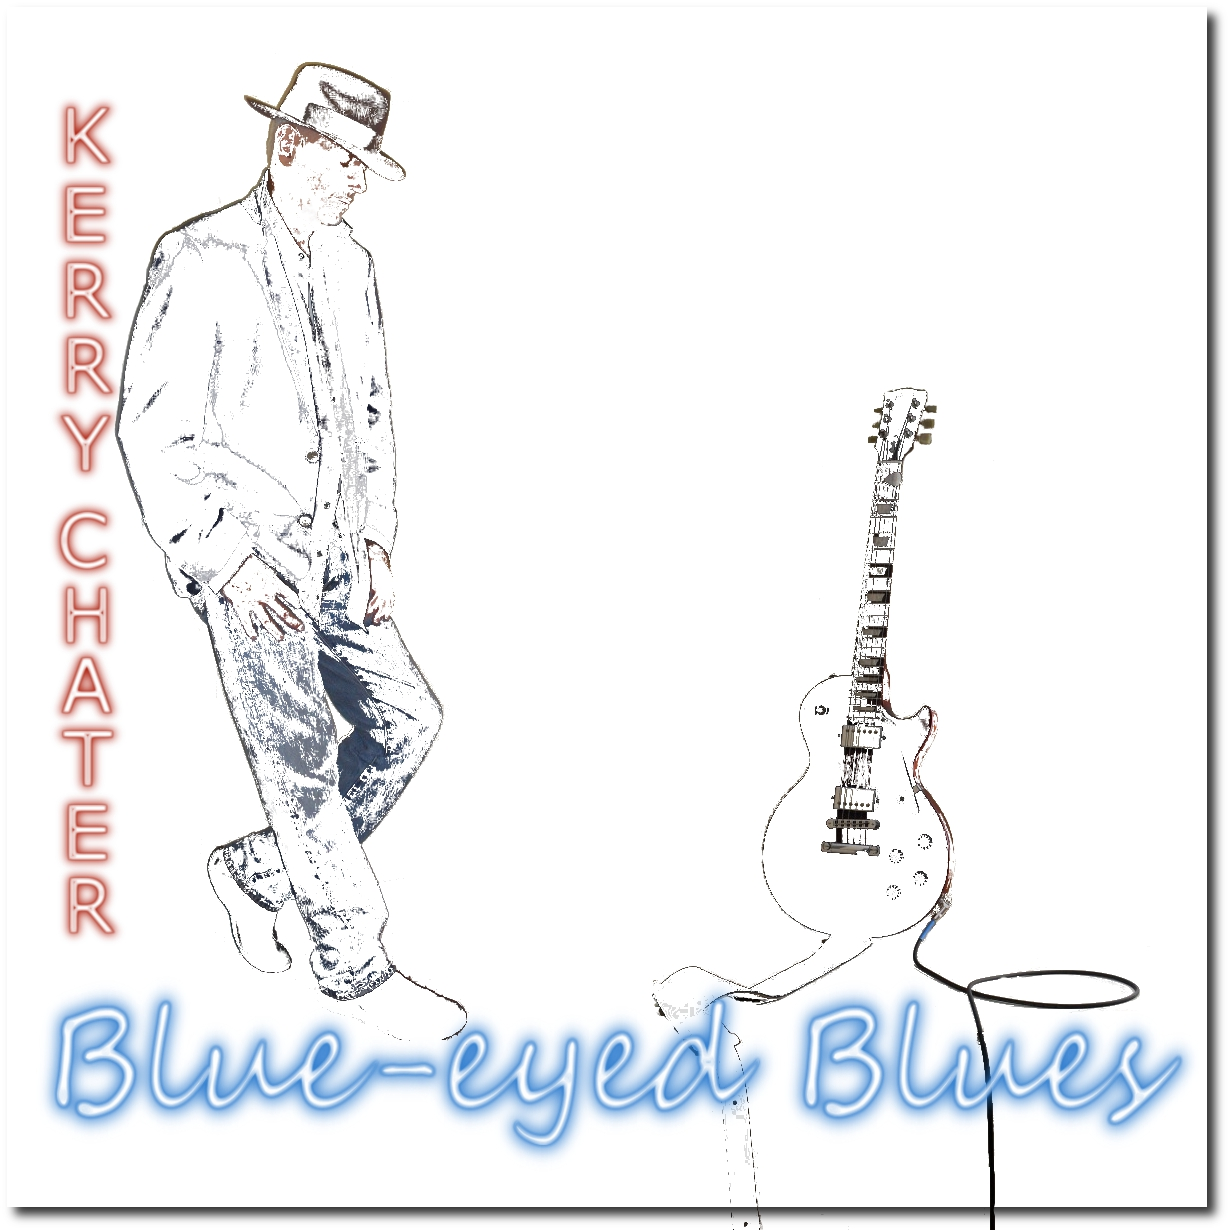 Blue-eyd Blues